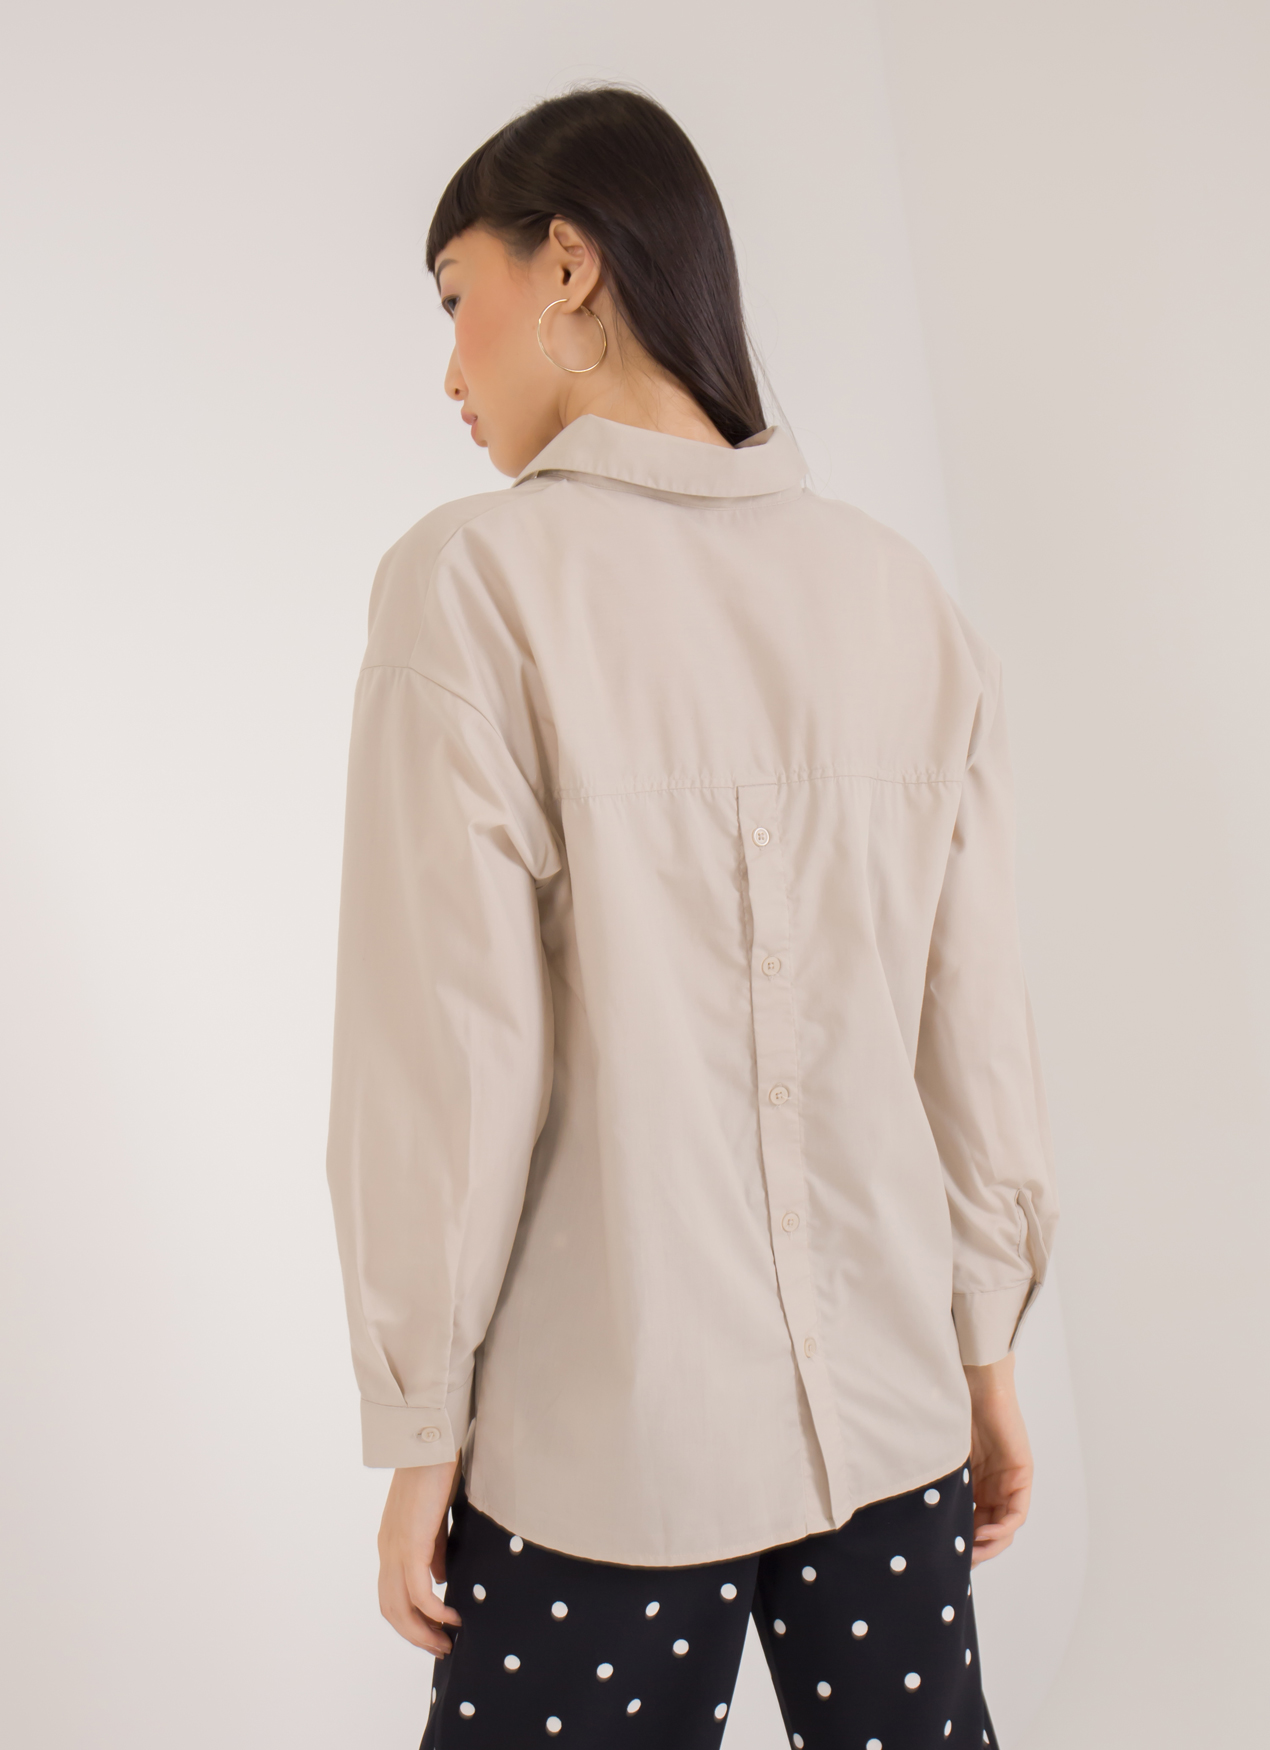 Sevendays Sunday Barbara Longsleeve Blouse - Beige